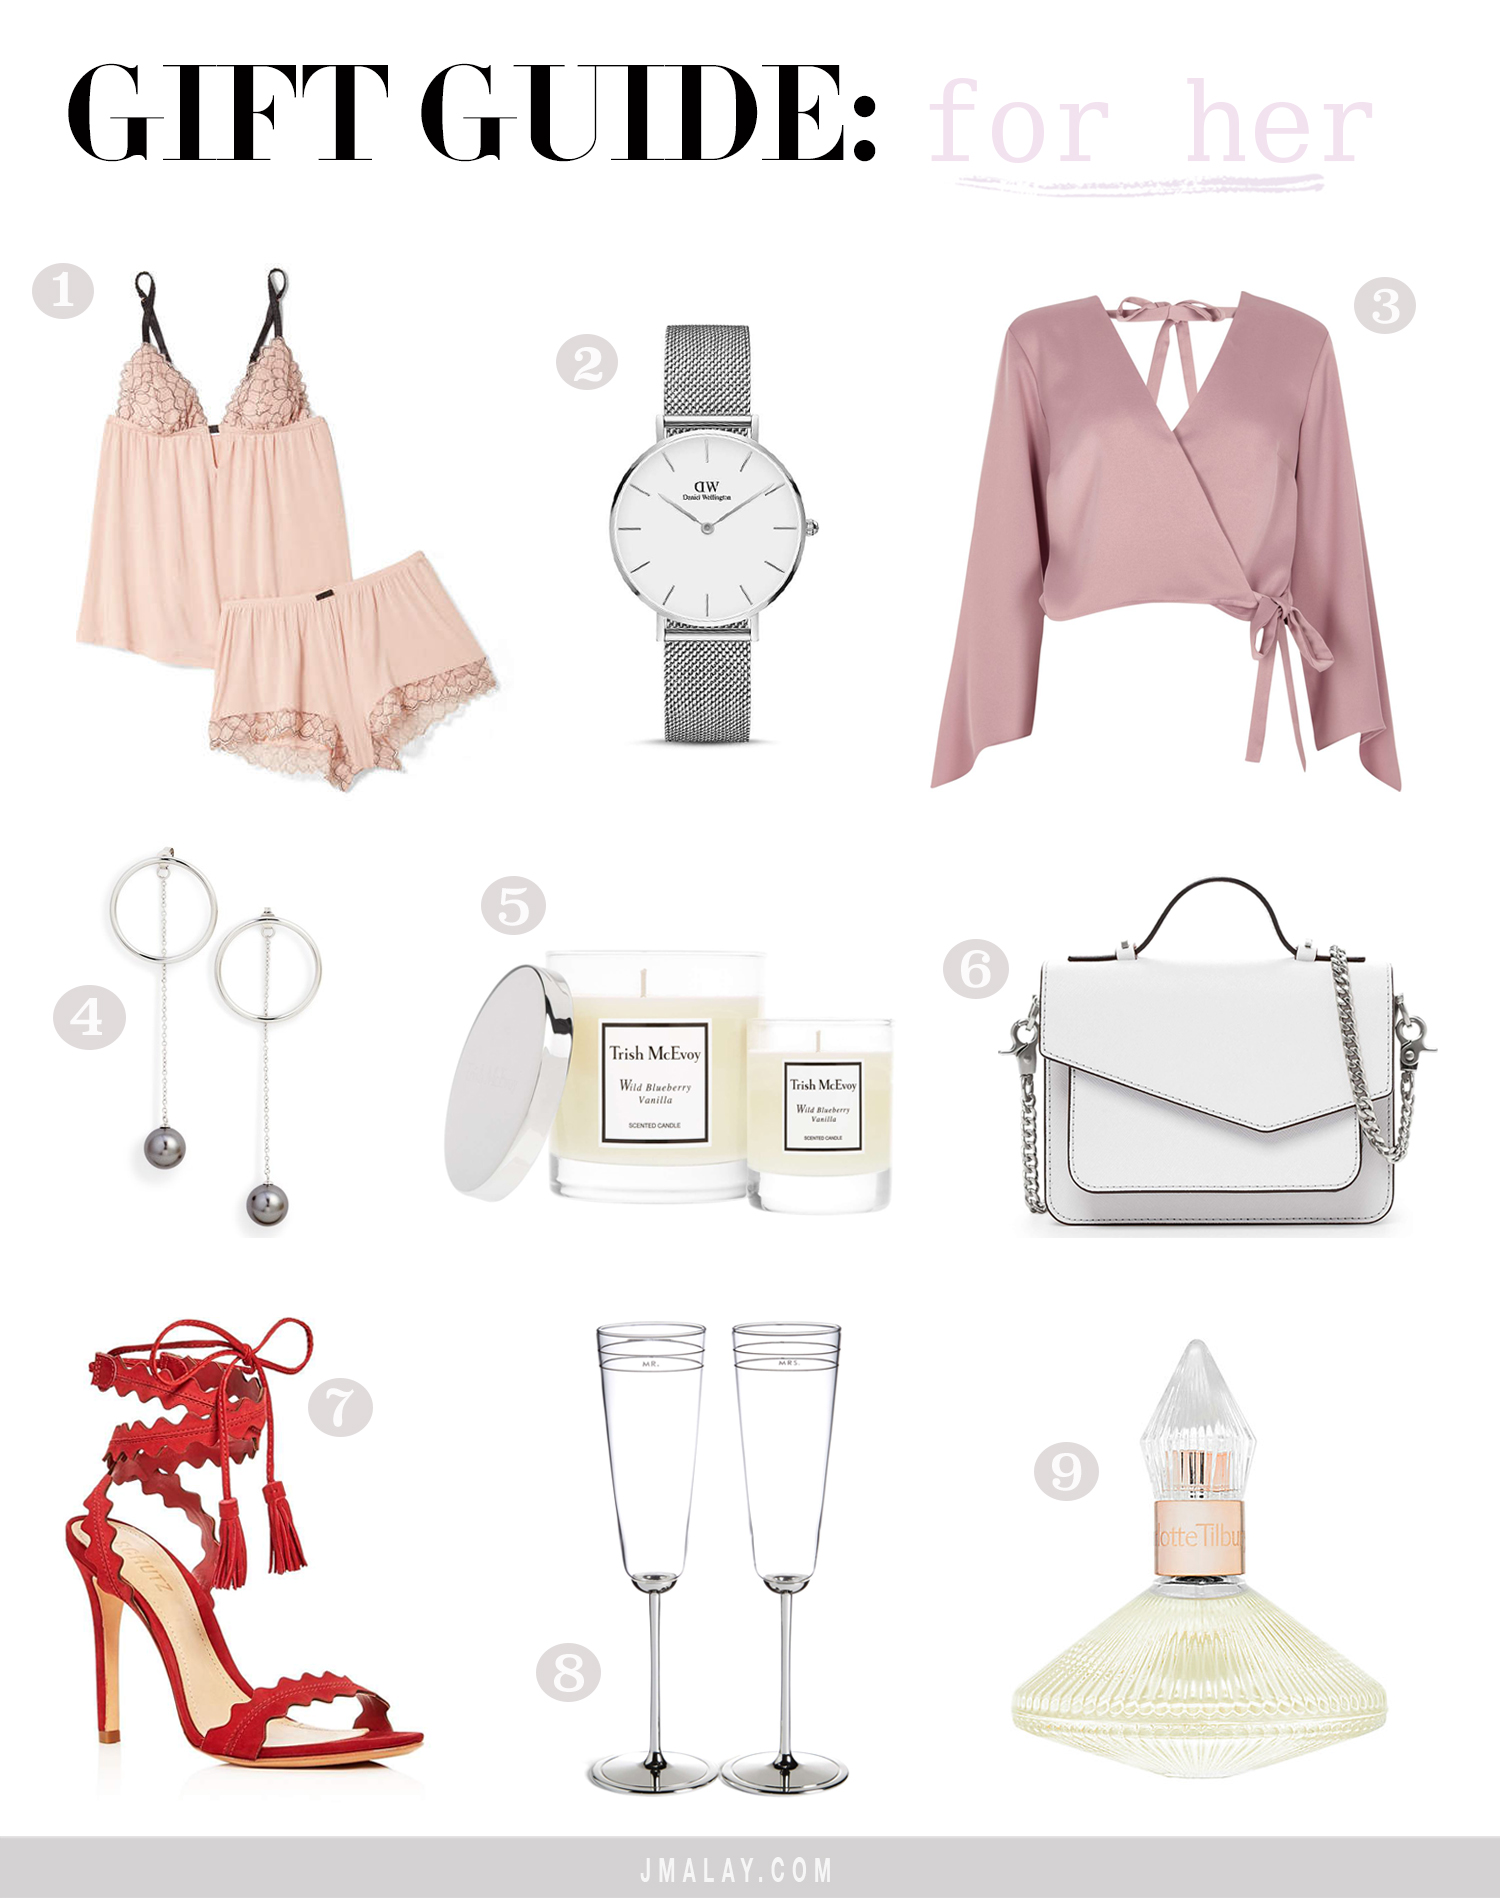 valentines day gift guide for her romantic gift ideas jmalay.com